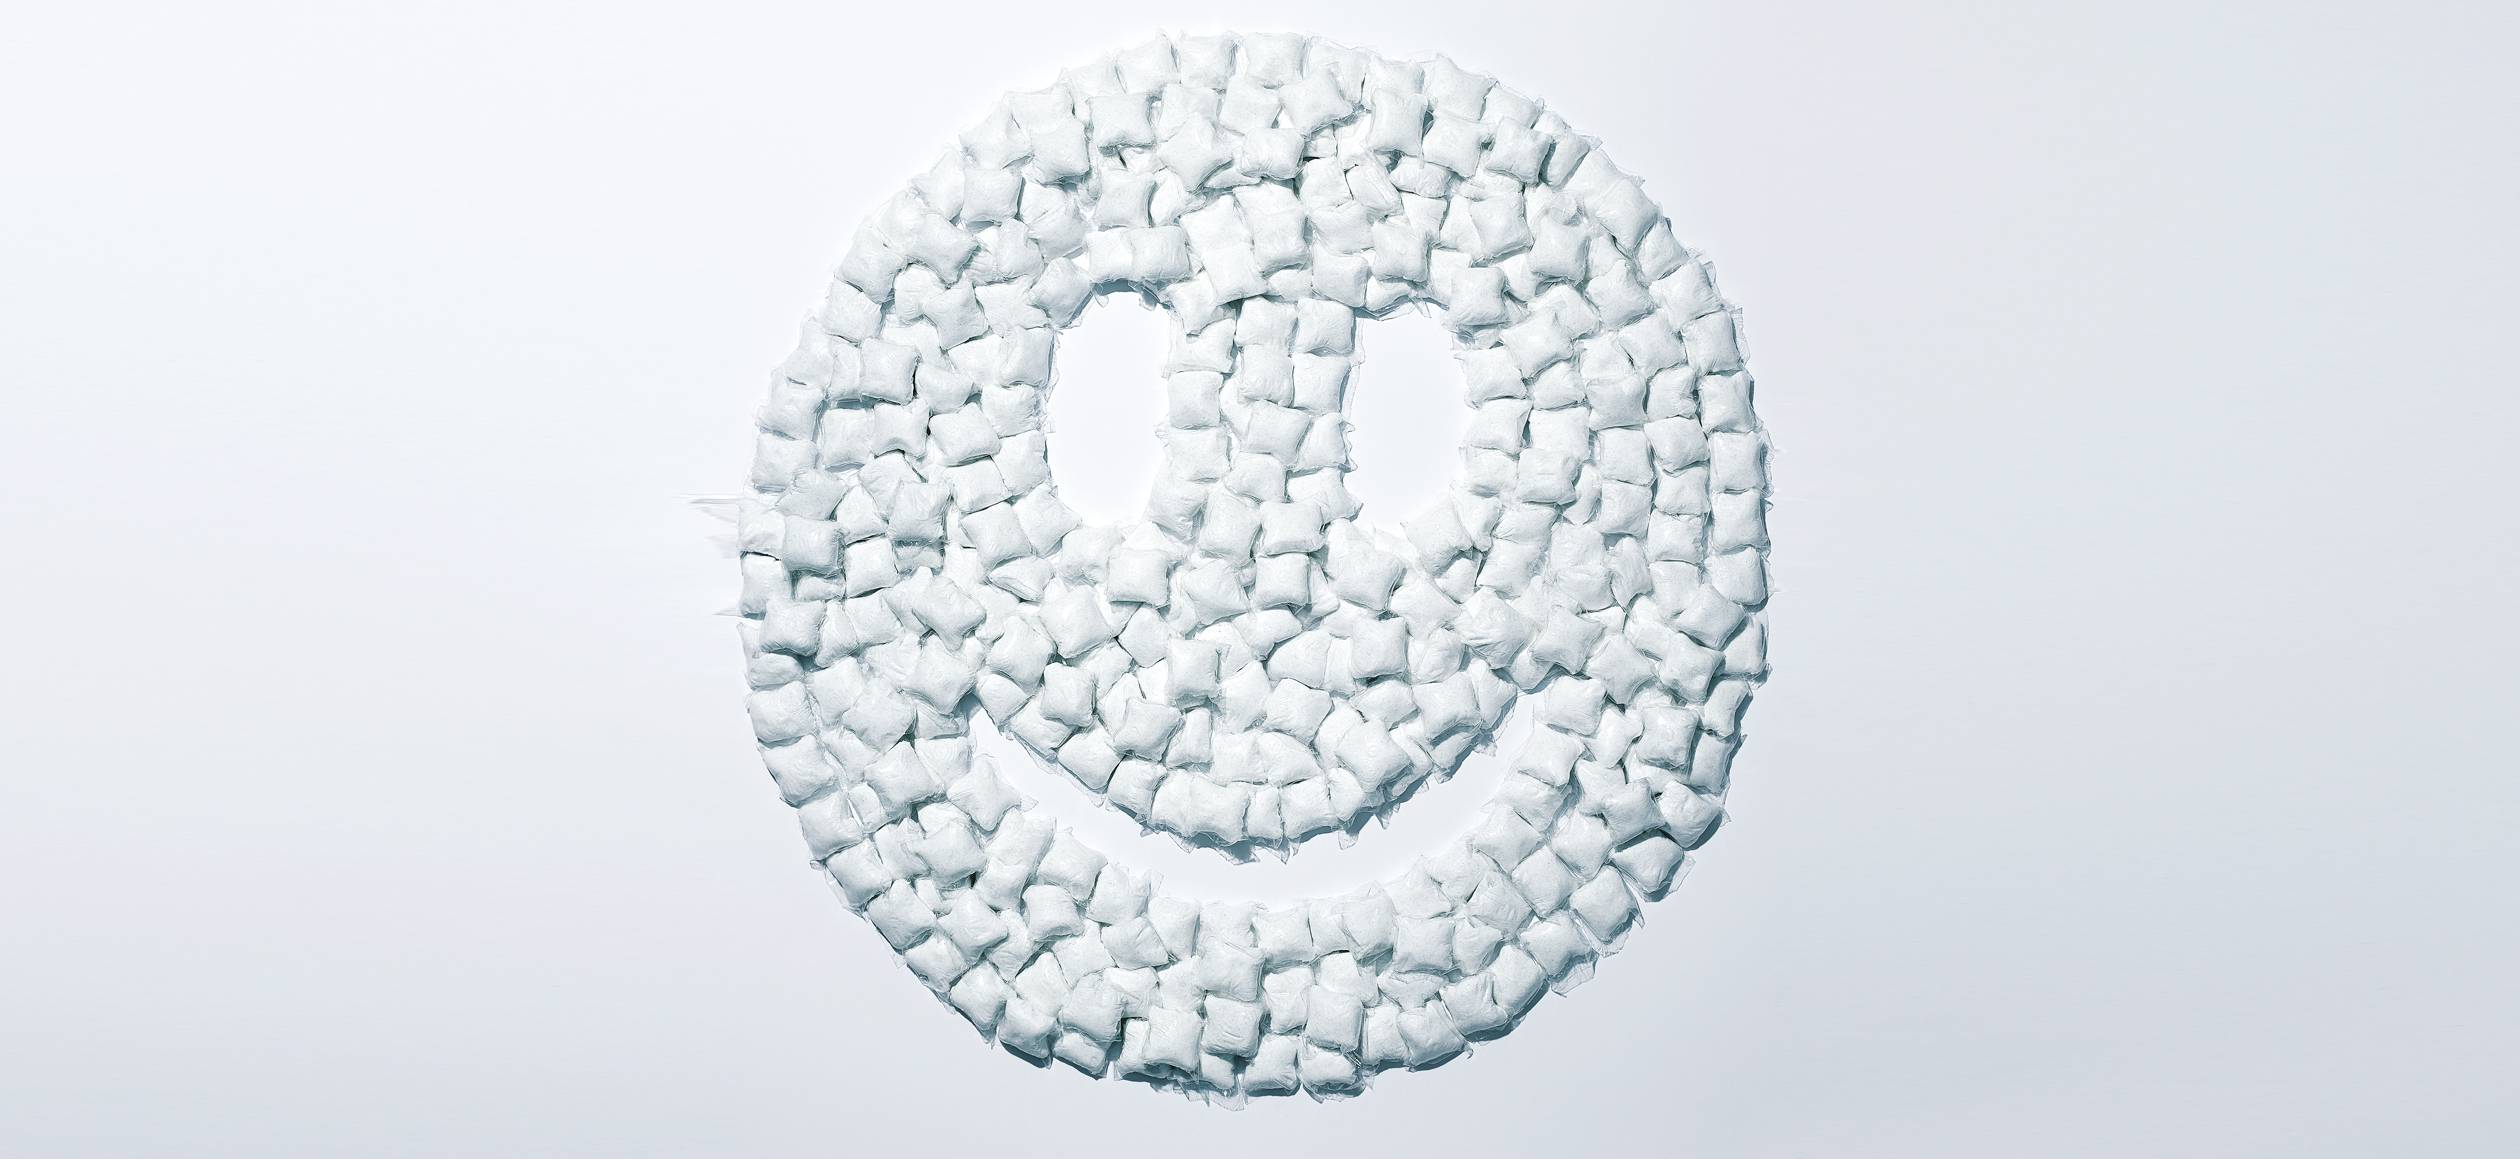 A happy face made of Seventh Generation laundry detergent packs